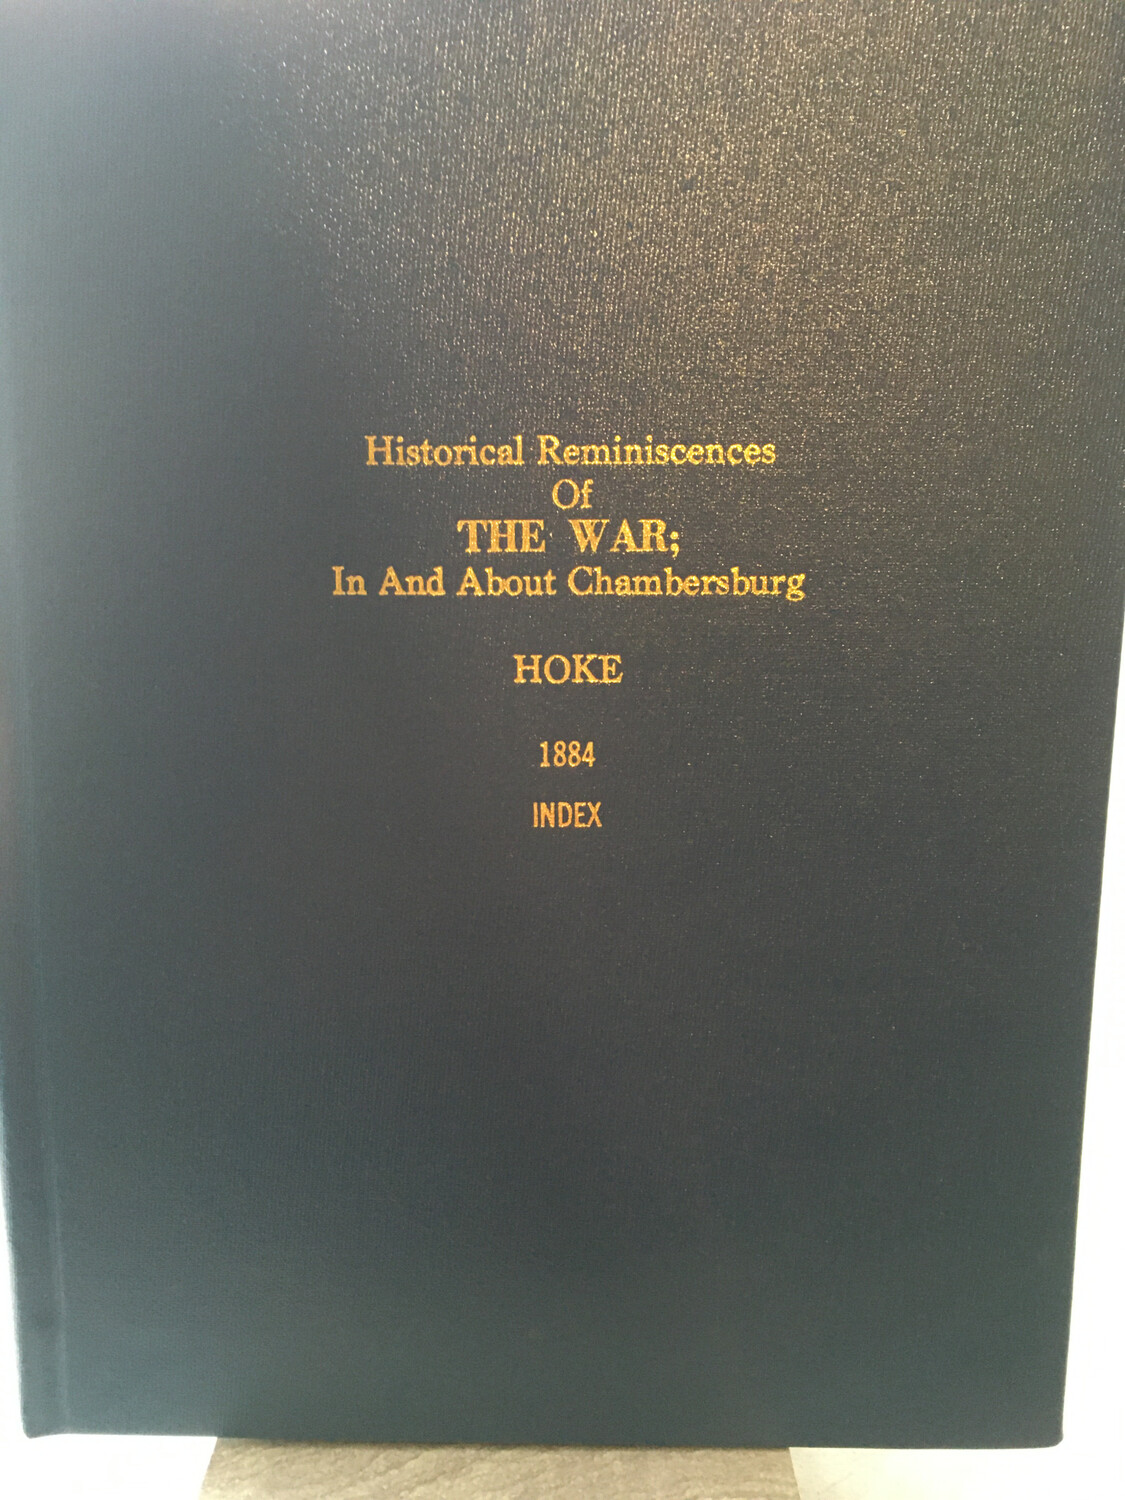 Historical Reminisces of the War 1884 With Index